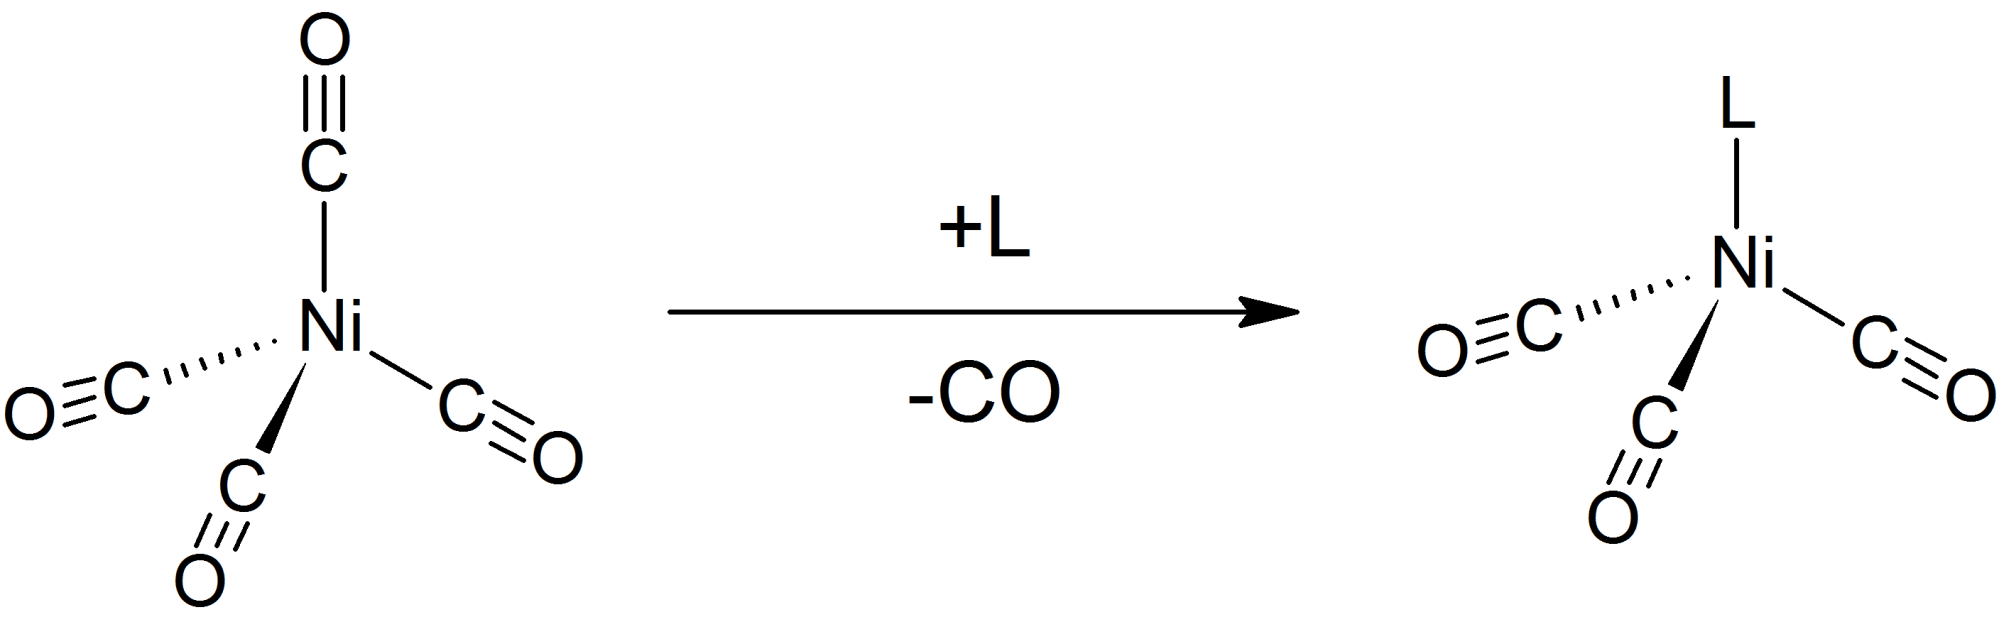 hight resolution of carbon monoxide lewis dot structure preparation of ni co 3l pnglewis dot structure for co